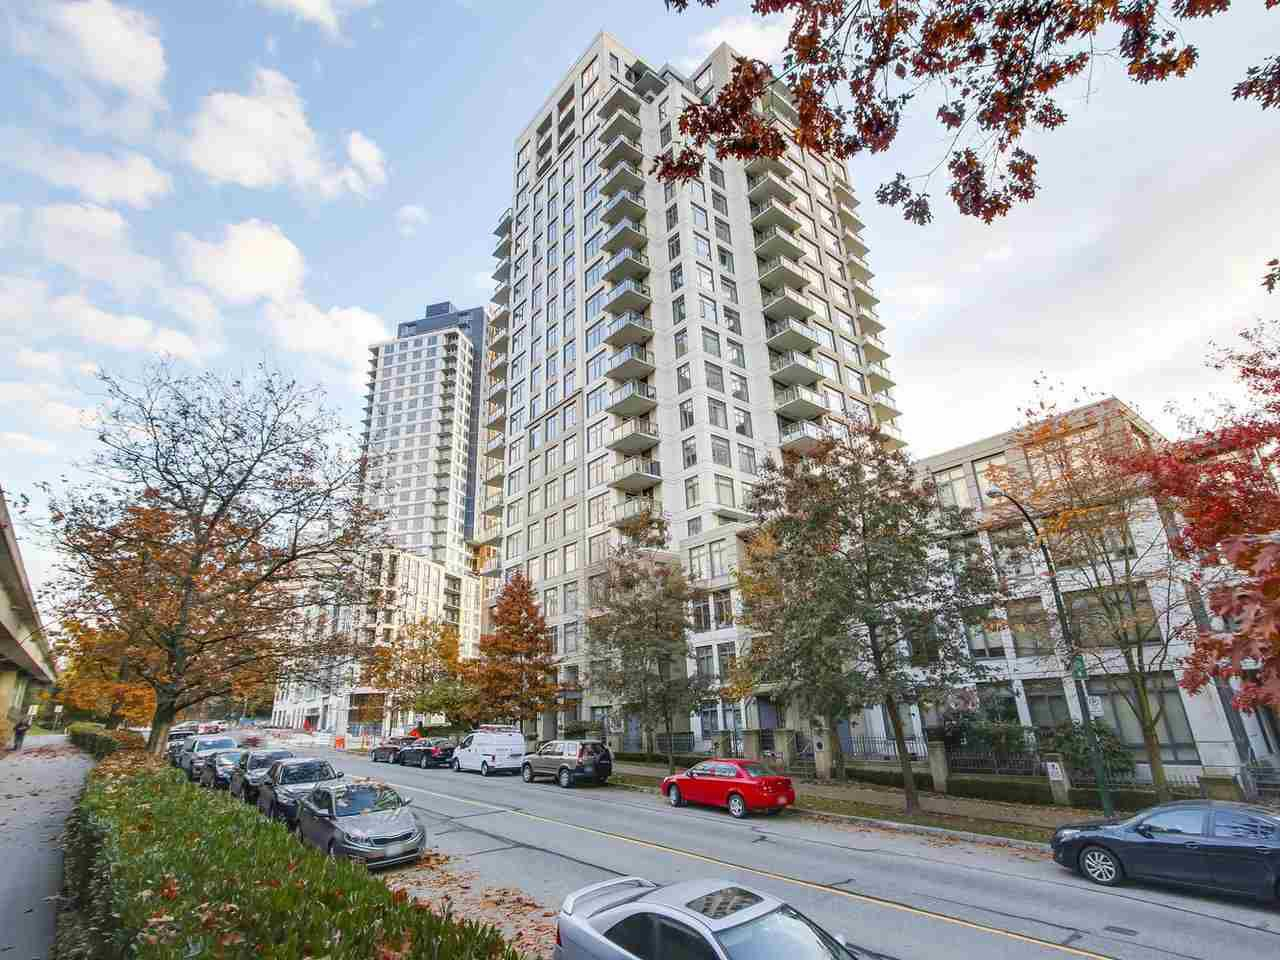 """Main Photo: 1409 3660 VANNESS Avenue in Vancouver: Collingwood VE Condo for sale in """"CIRCA"""" (Vancouver East)  : MLS®# R2251154"""